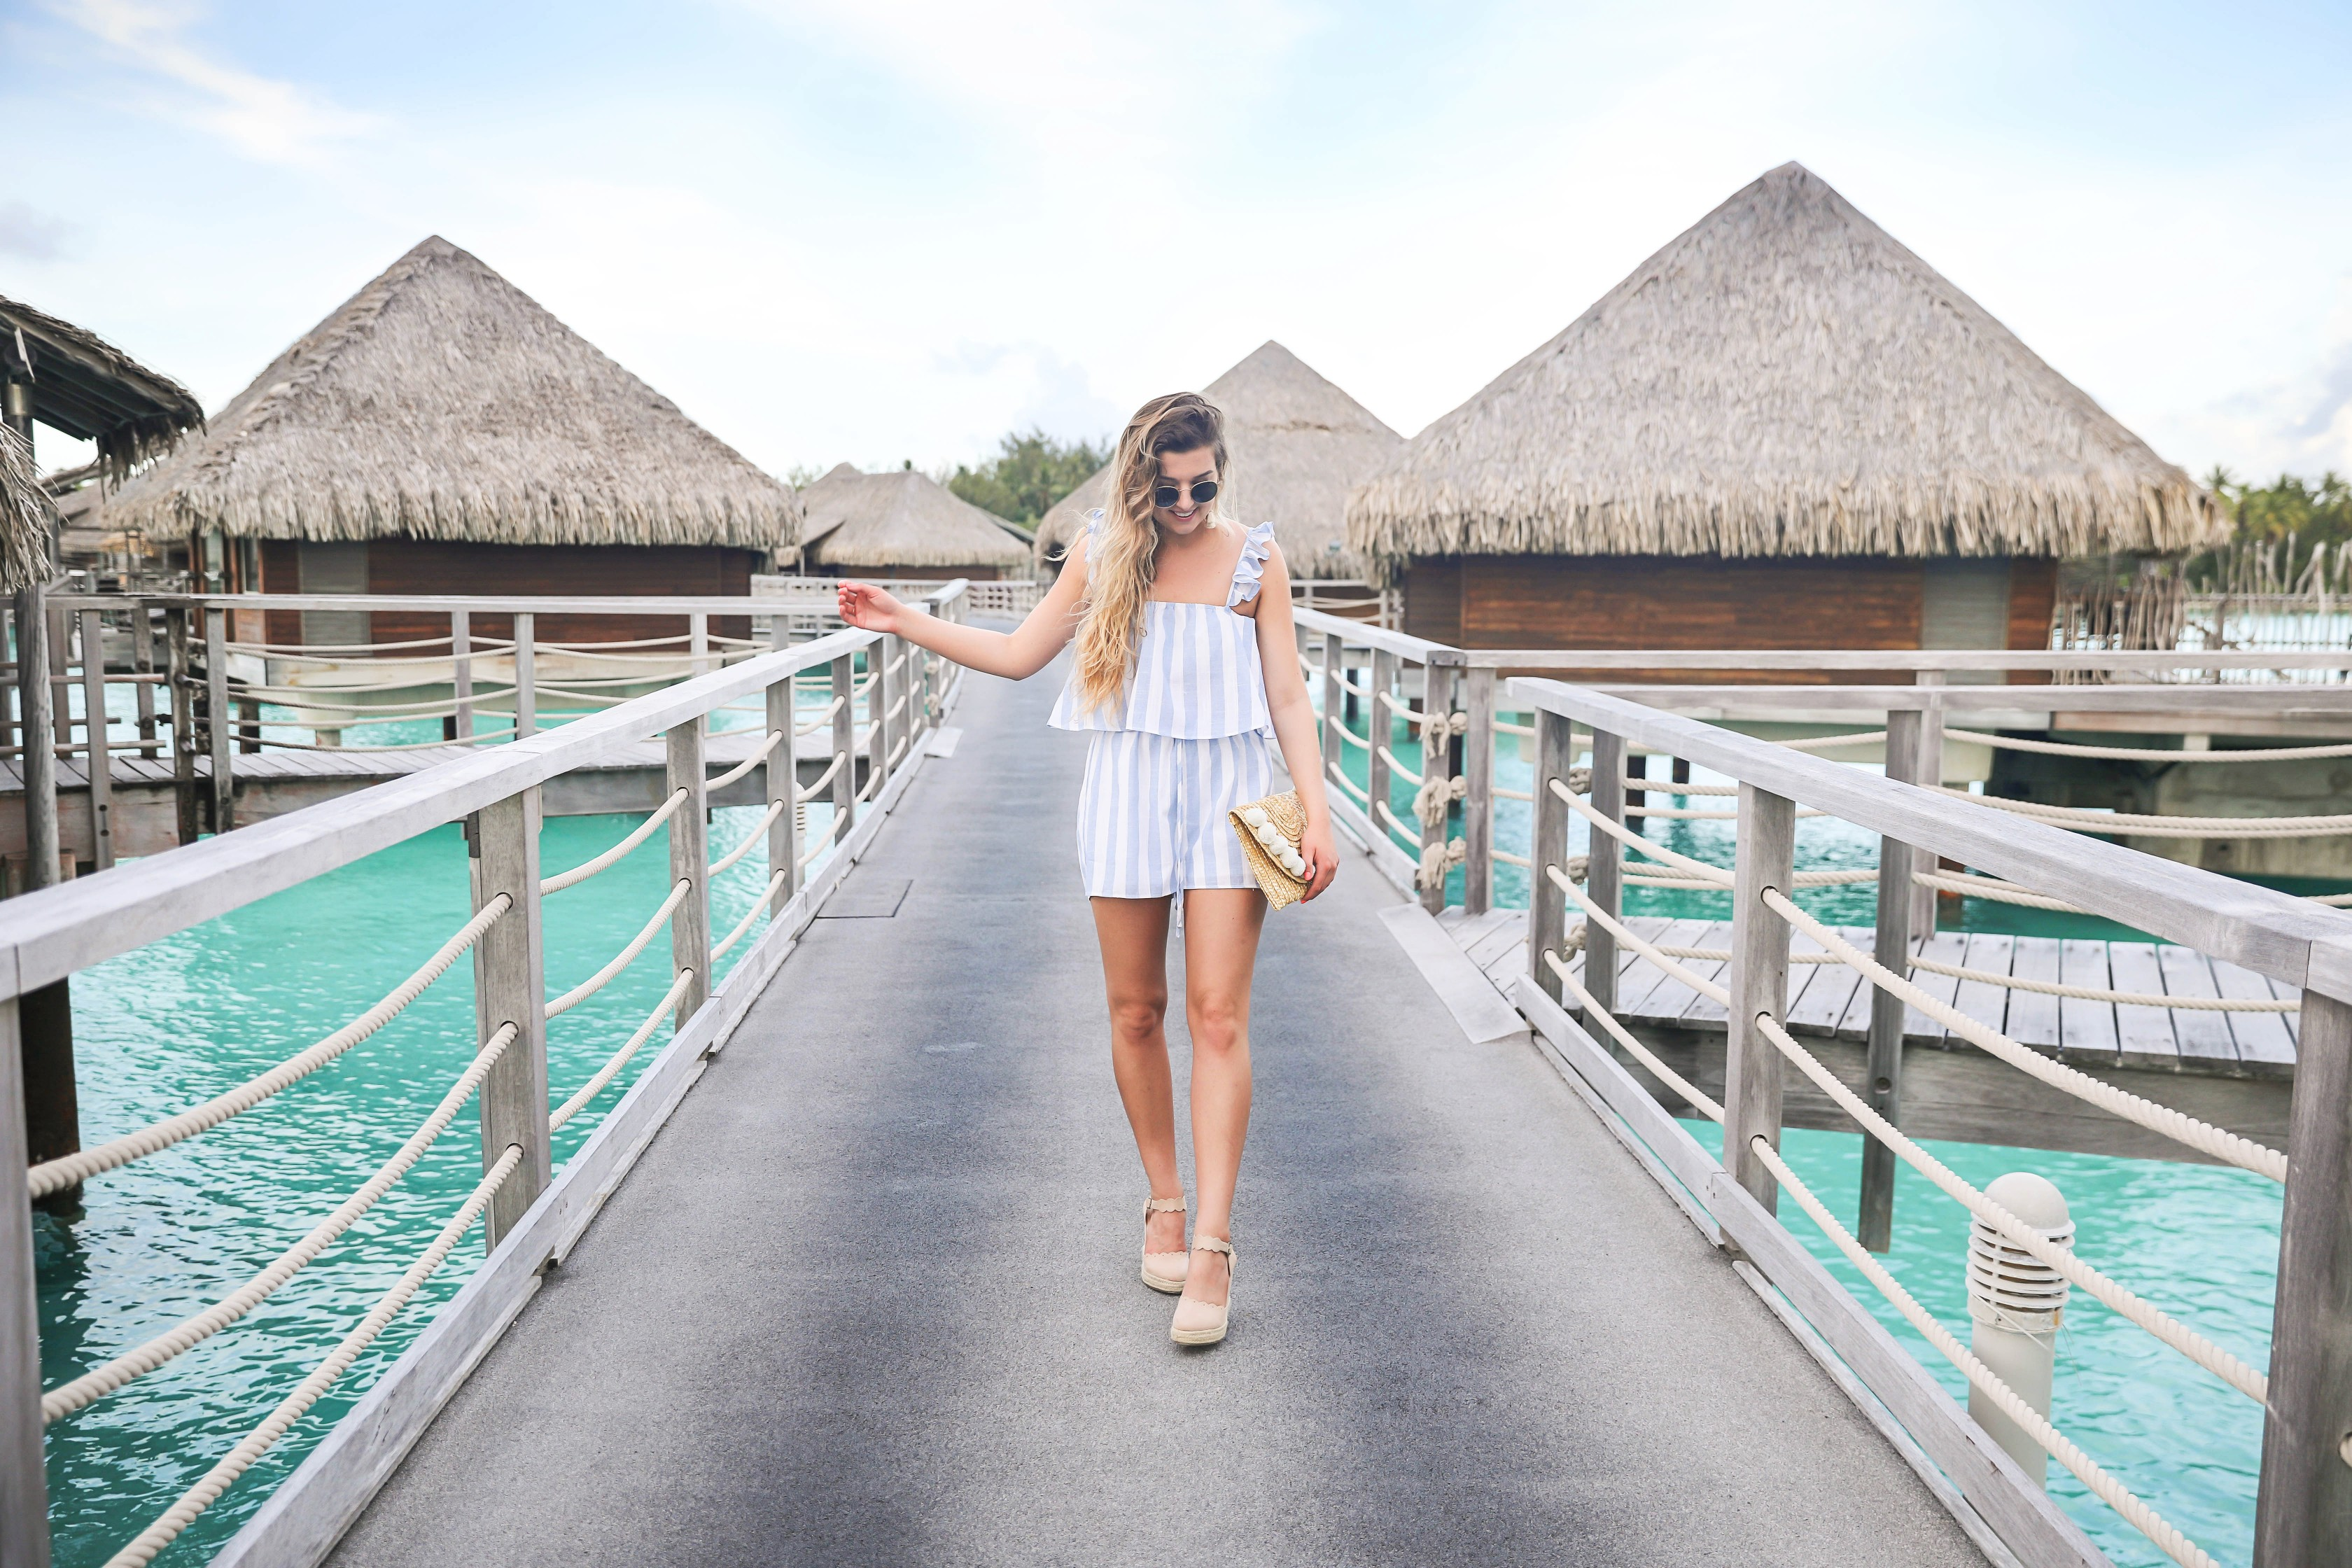 Bora Bora Intercontinental Hotel Thalasso! Trip to Bora Bora on fashion and travel blog Daily Dose of Charm by Lauren Lindmark! The perfect beach outfit! Striped blue and white two piece outfit!